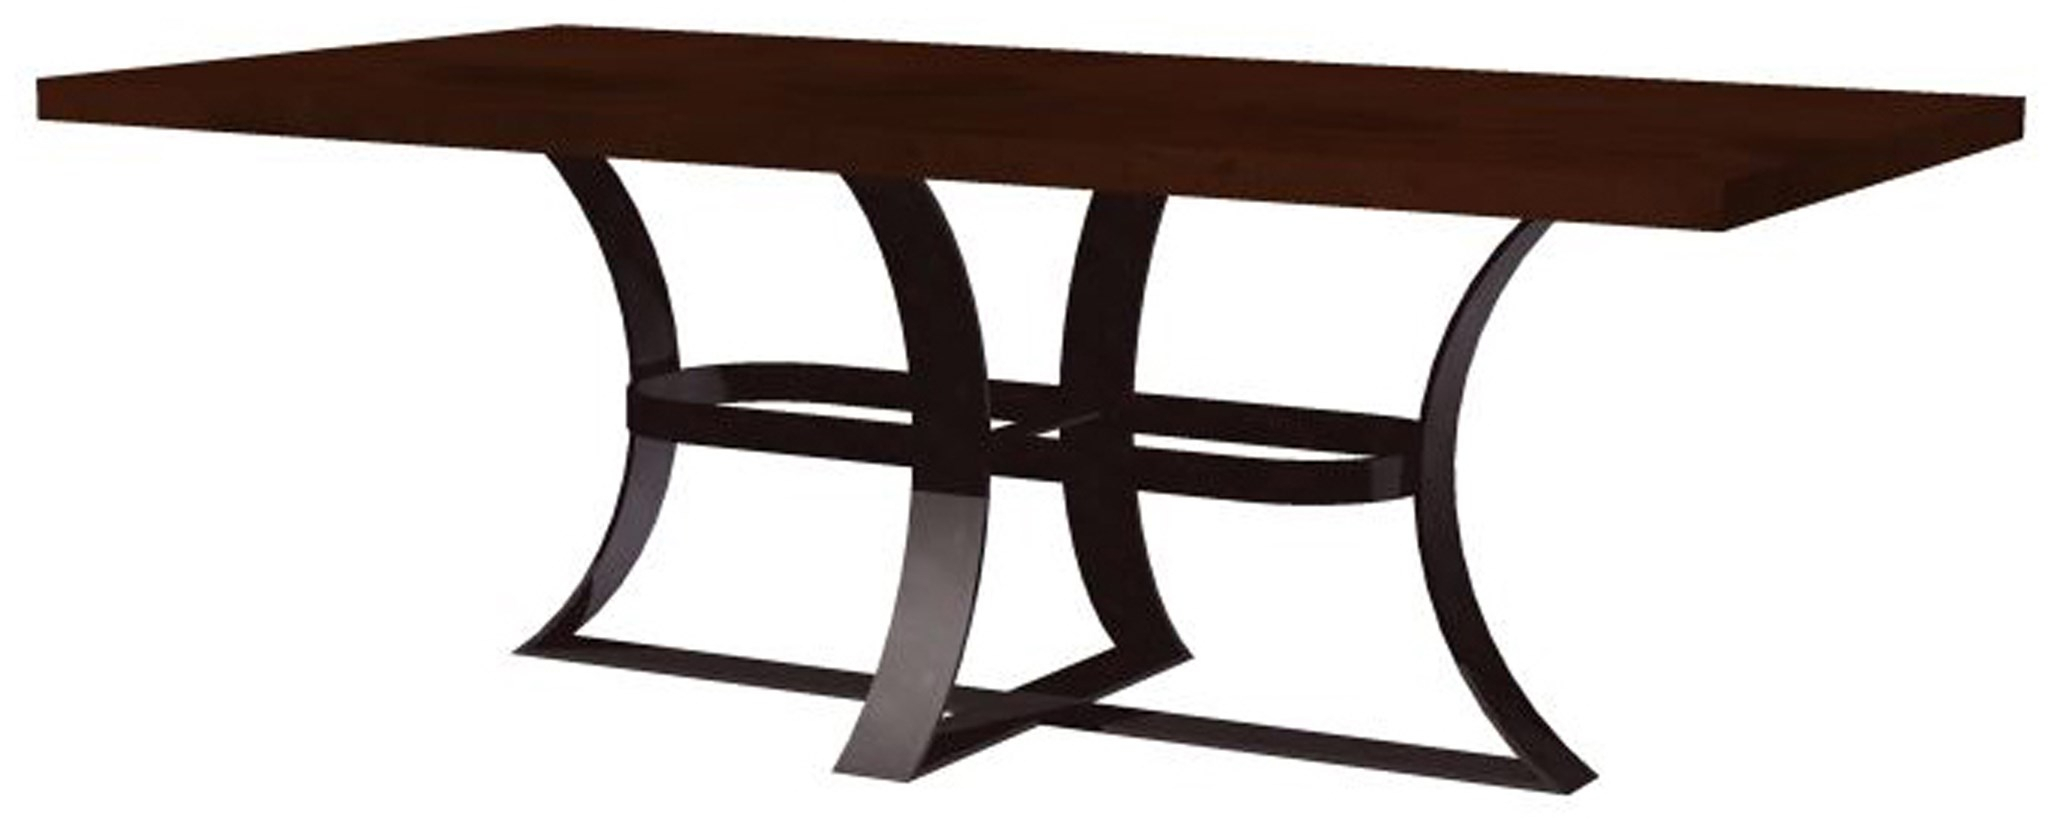 Avery Dining Table With Rectangular Hammered Dark Brown Copper Top Regarding Most Popular Avery Rectangular Dining Tables (View 9 of 25)